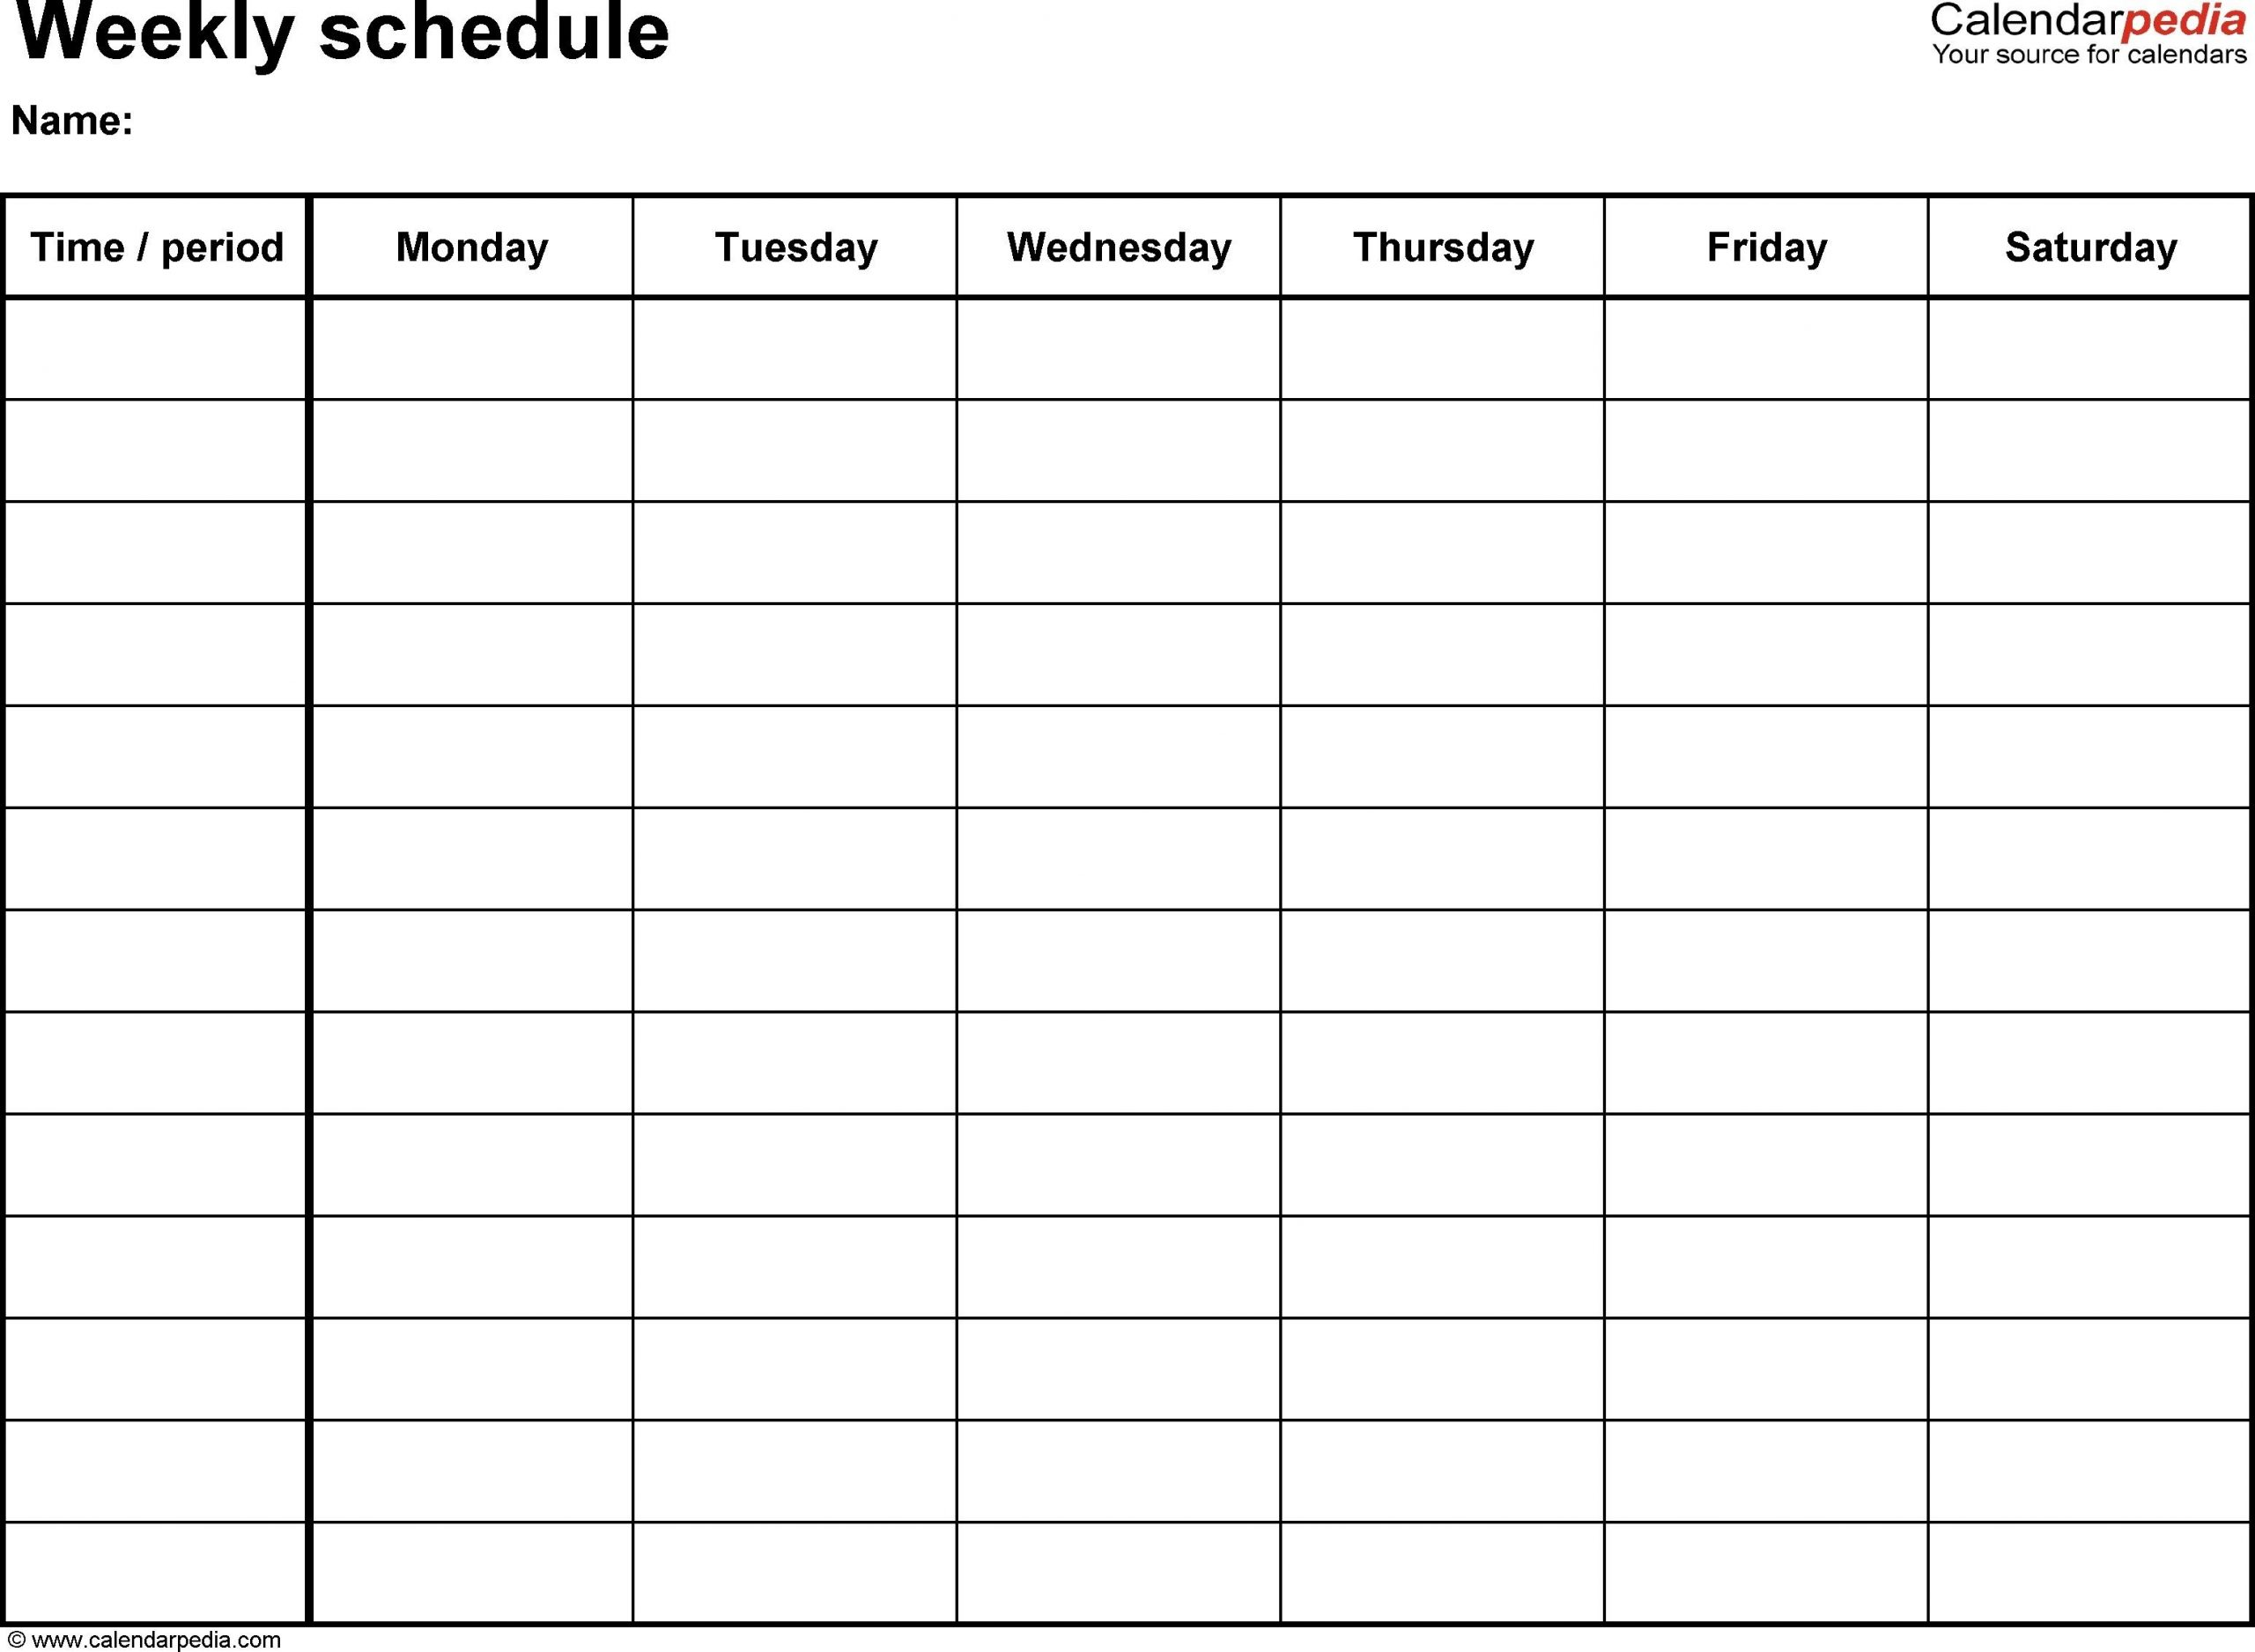 Fillable Weekly Calendar Printable Weekly Calendar With 15  Weekly Diary Sheets With Hourly Slots